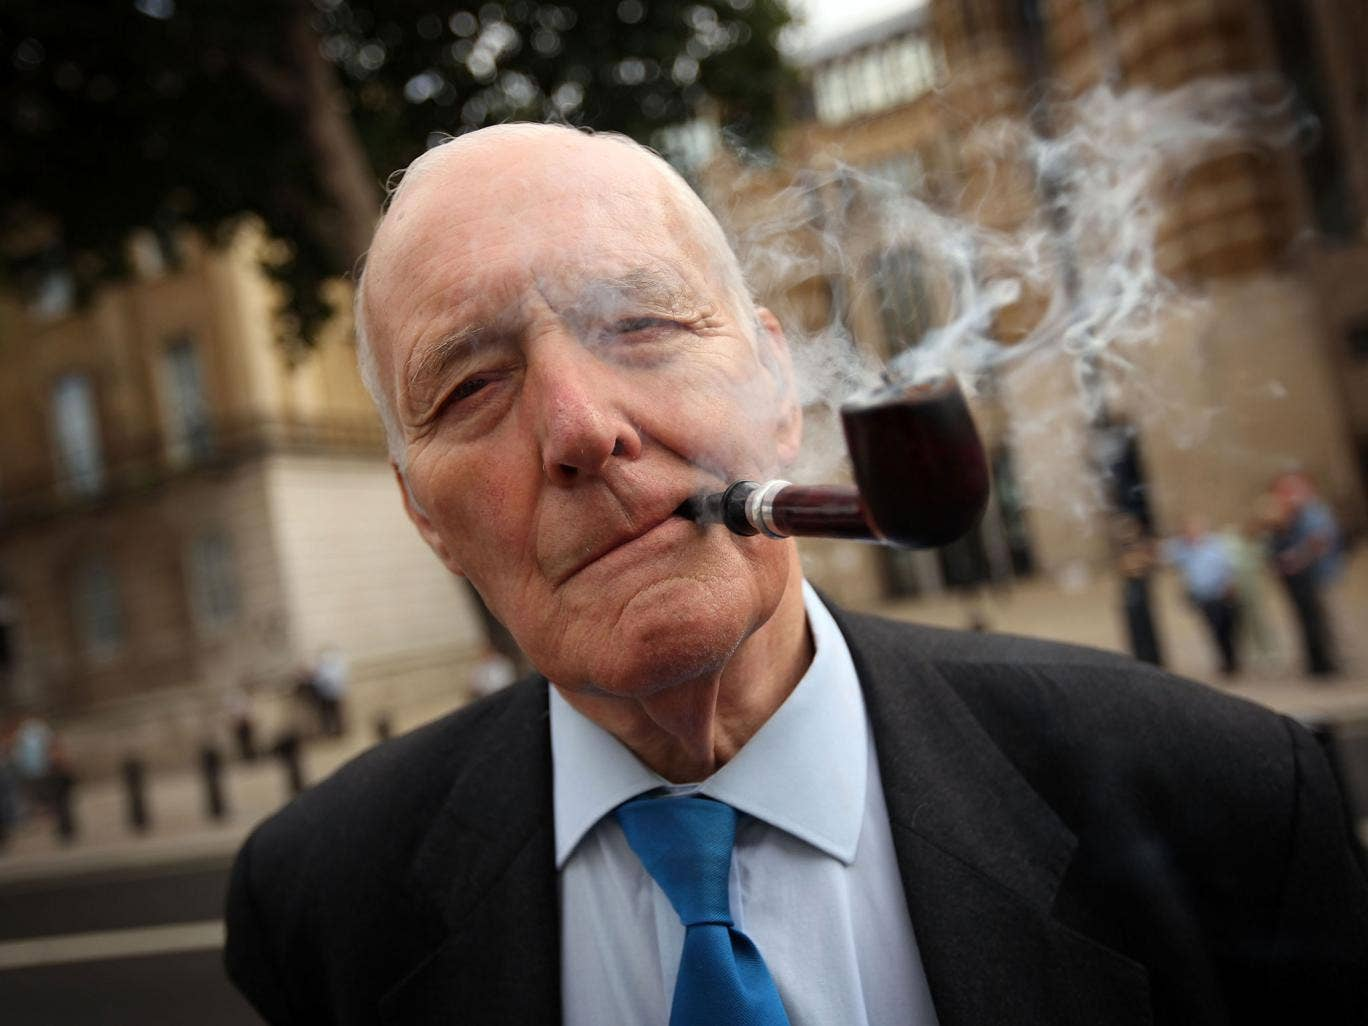 Former Labour MP Tony Benn arrives to lay a wreath at the Cenotaph on Whitehall at a Ceremony for the 204 dead Soldiers on August 17, 2009 in London, England.